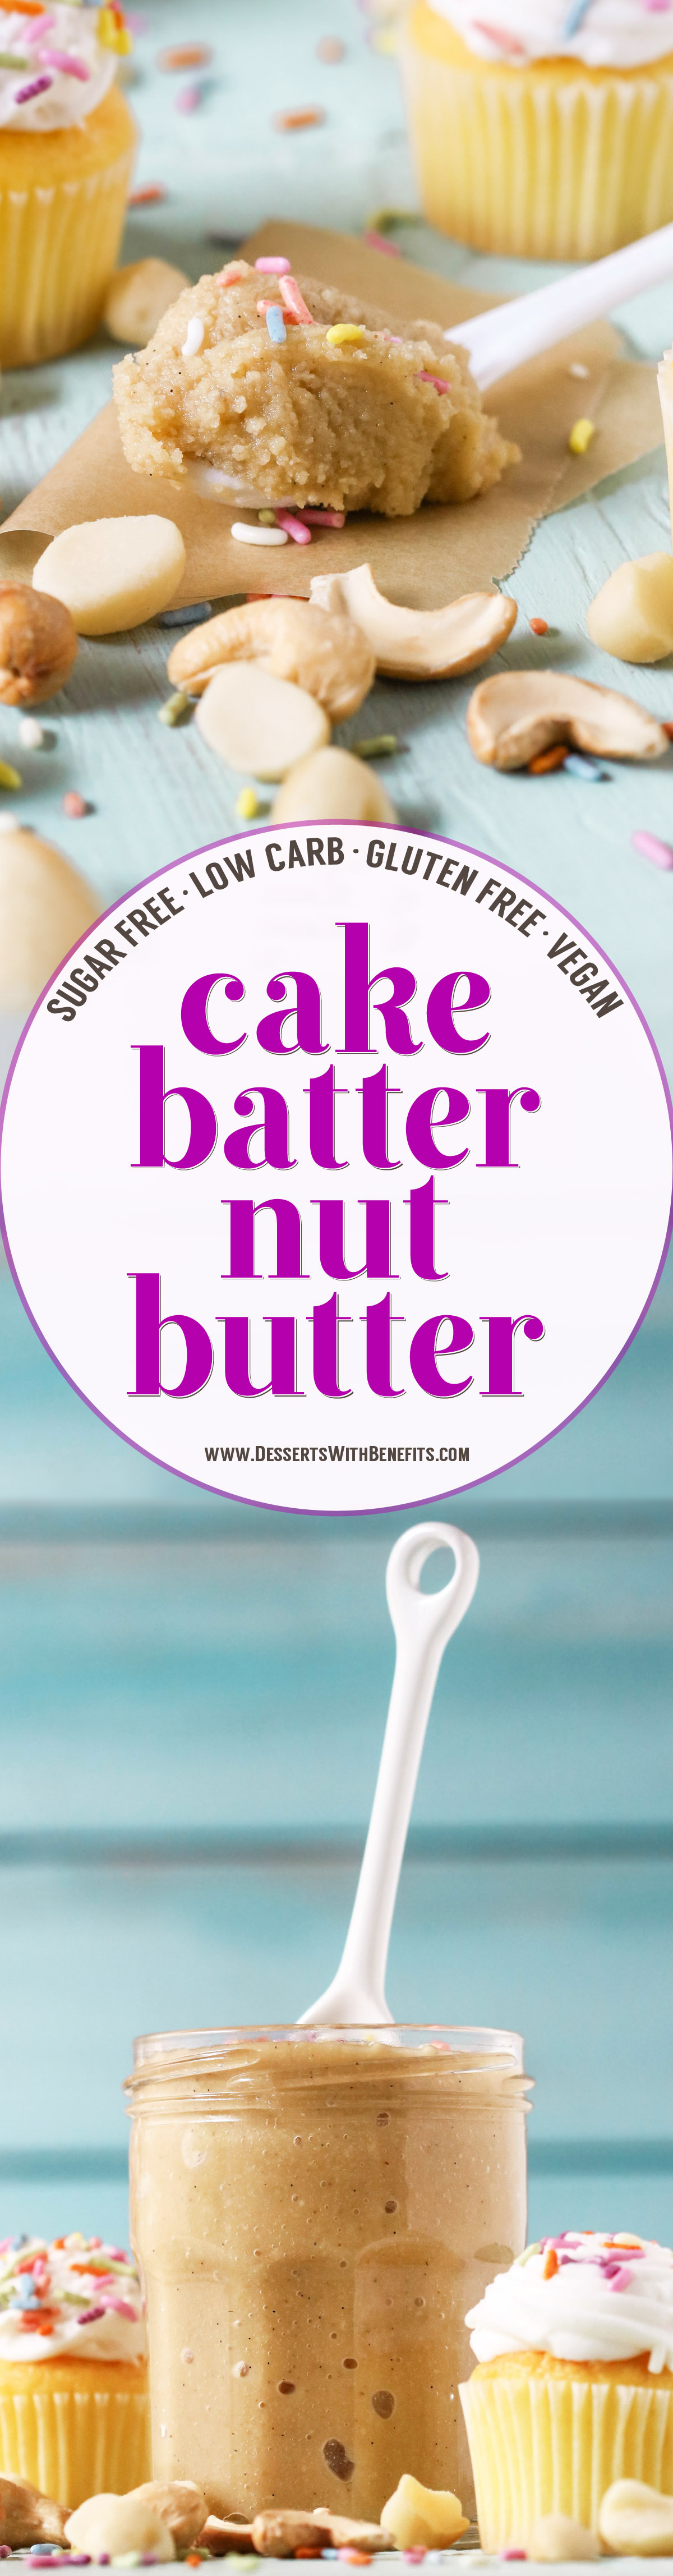 This Healthy Cake Batter Nut Butter is sweet, buttery, dense, thick, and spreadable. This easy 5-ingredient recipe is sugar free, low carb, gluten free, dairy free, and vegan!